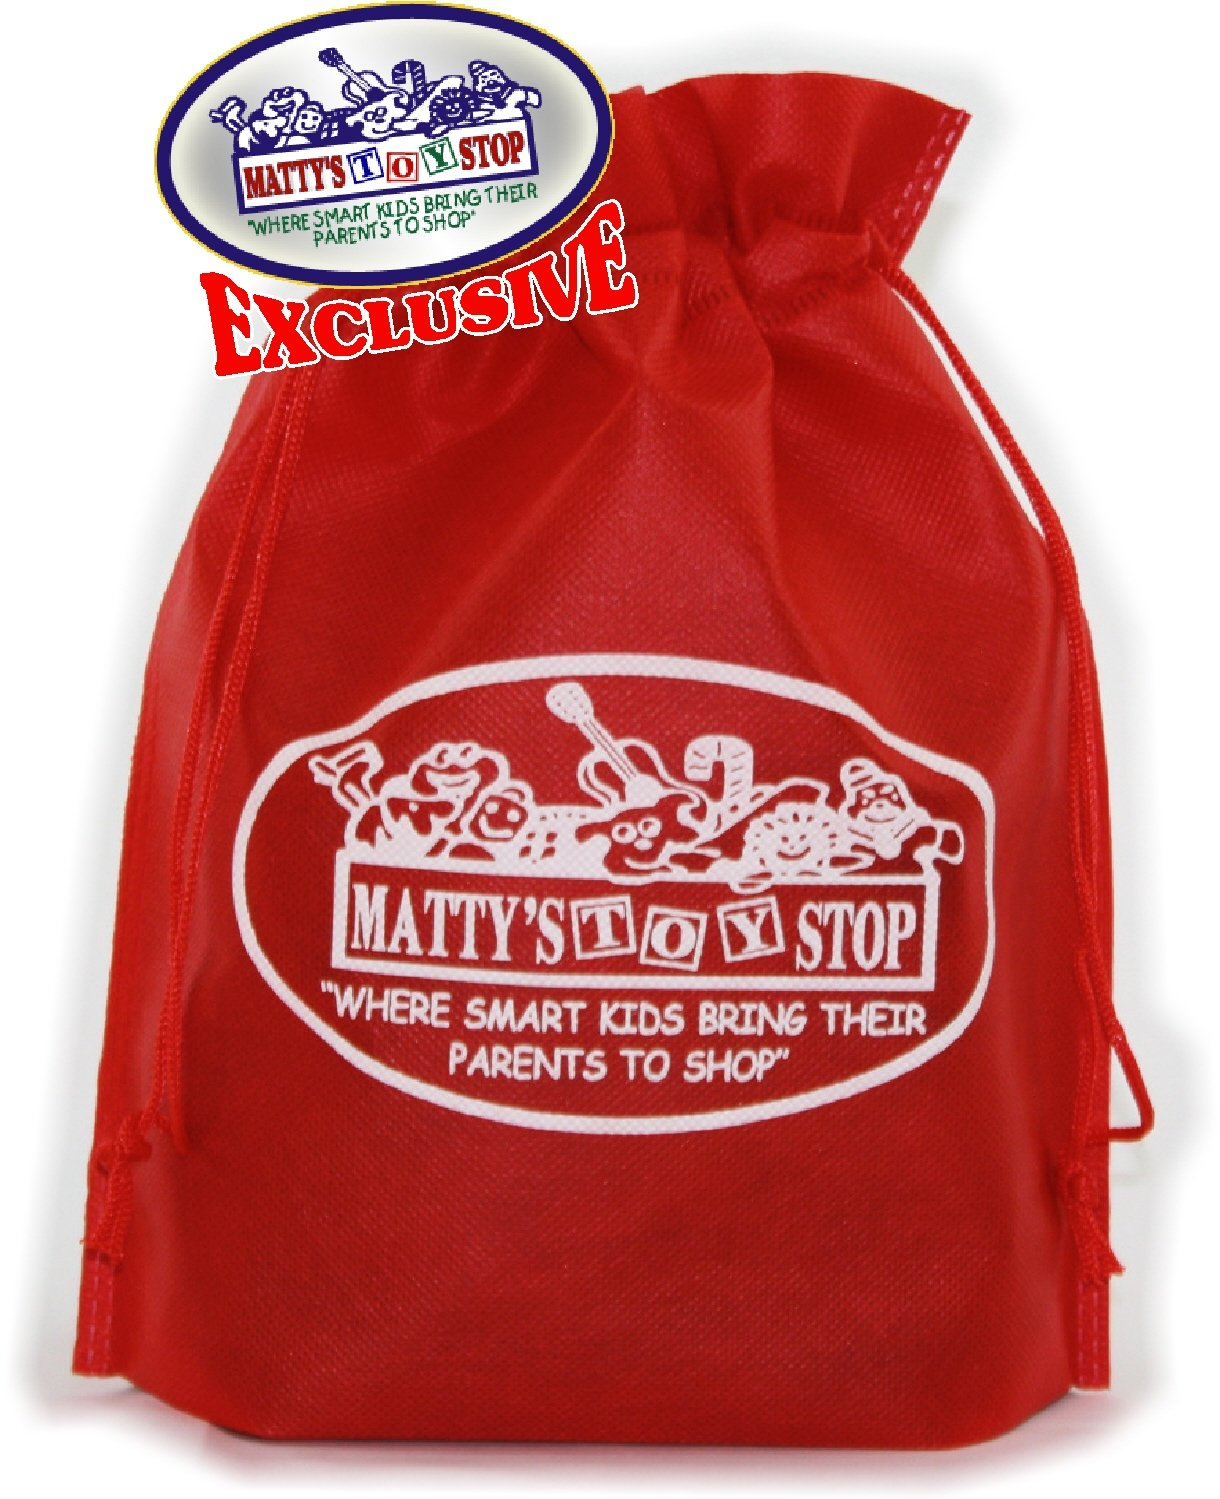 Schylling Classic Tin Kaleidoscope Party Set Bundle Includes Exclusive Matty's Toy Stop Storage Bag - 3 Pack by Schylling (Image #2)